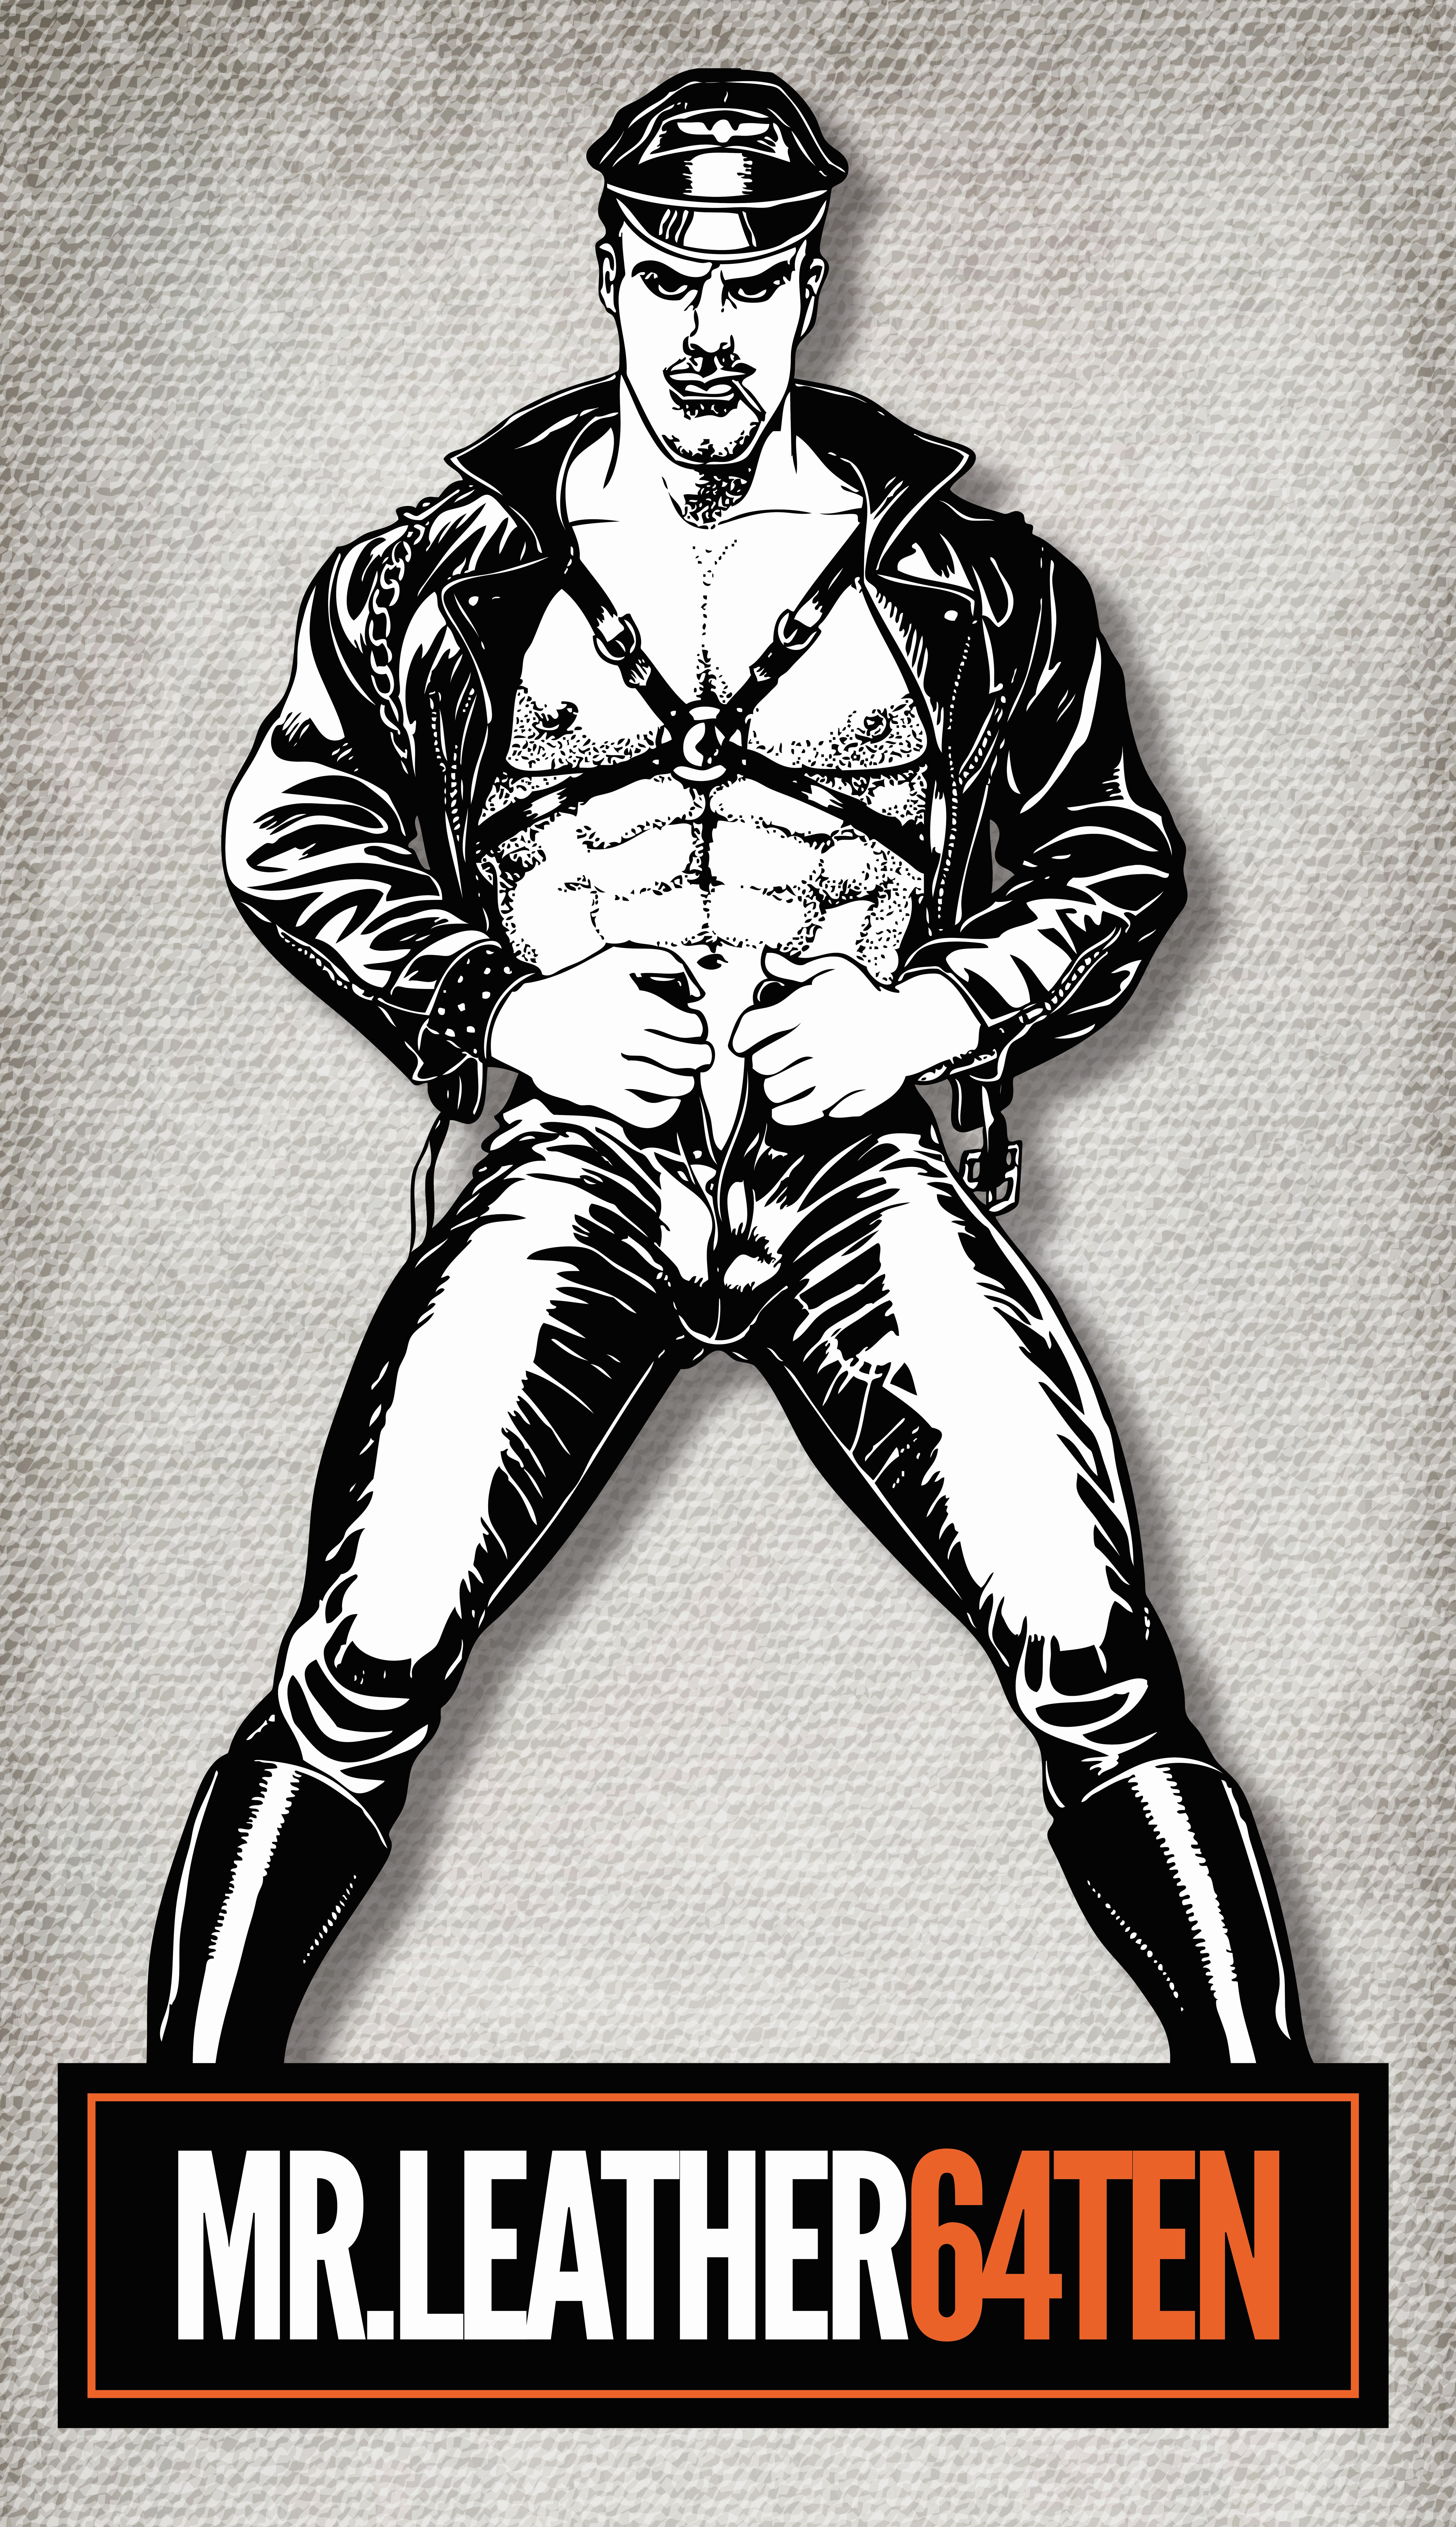 Mr. Leather64Ten